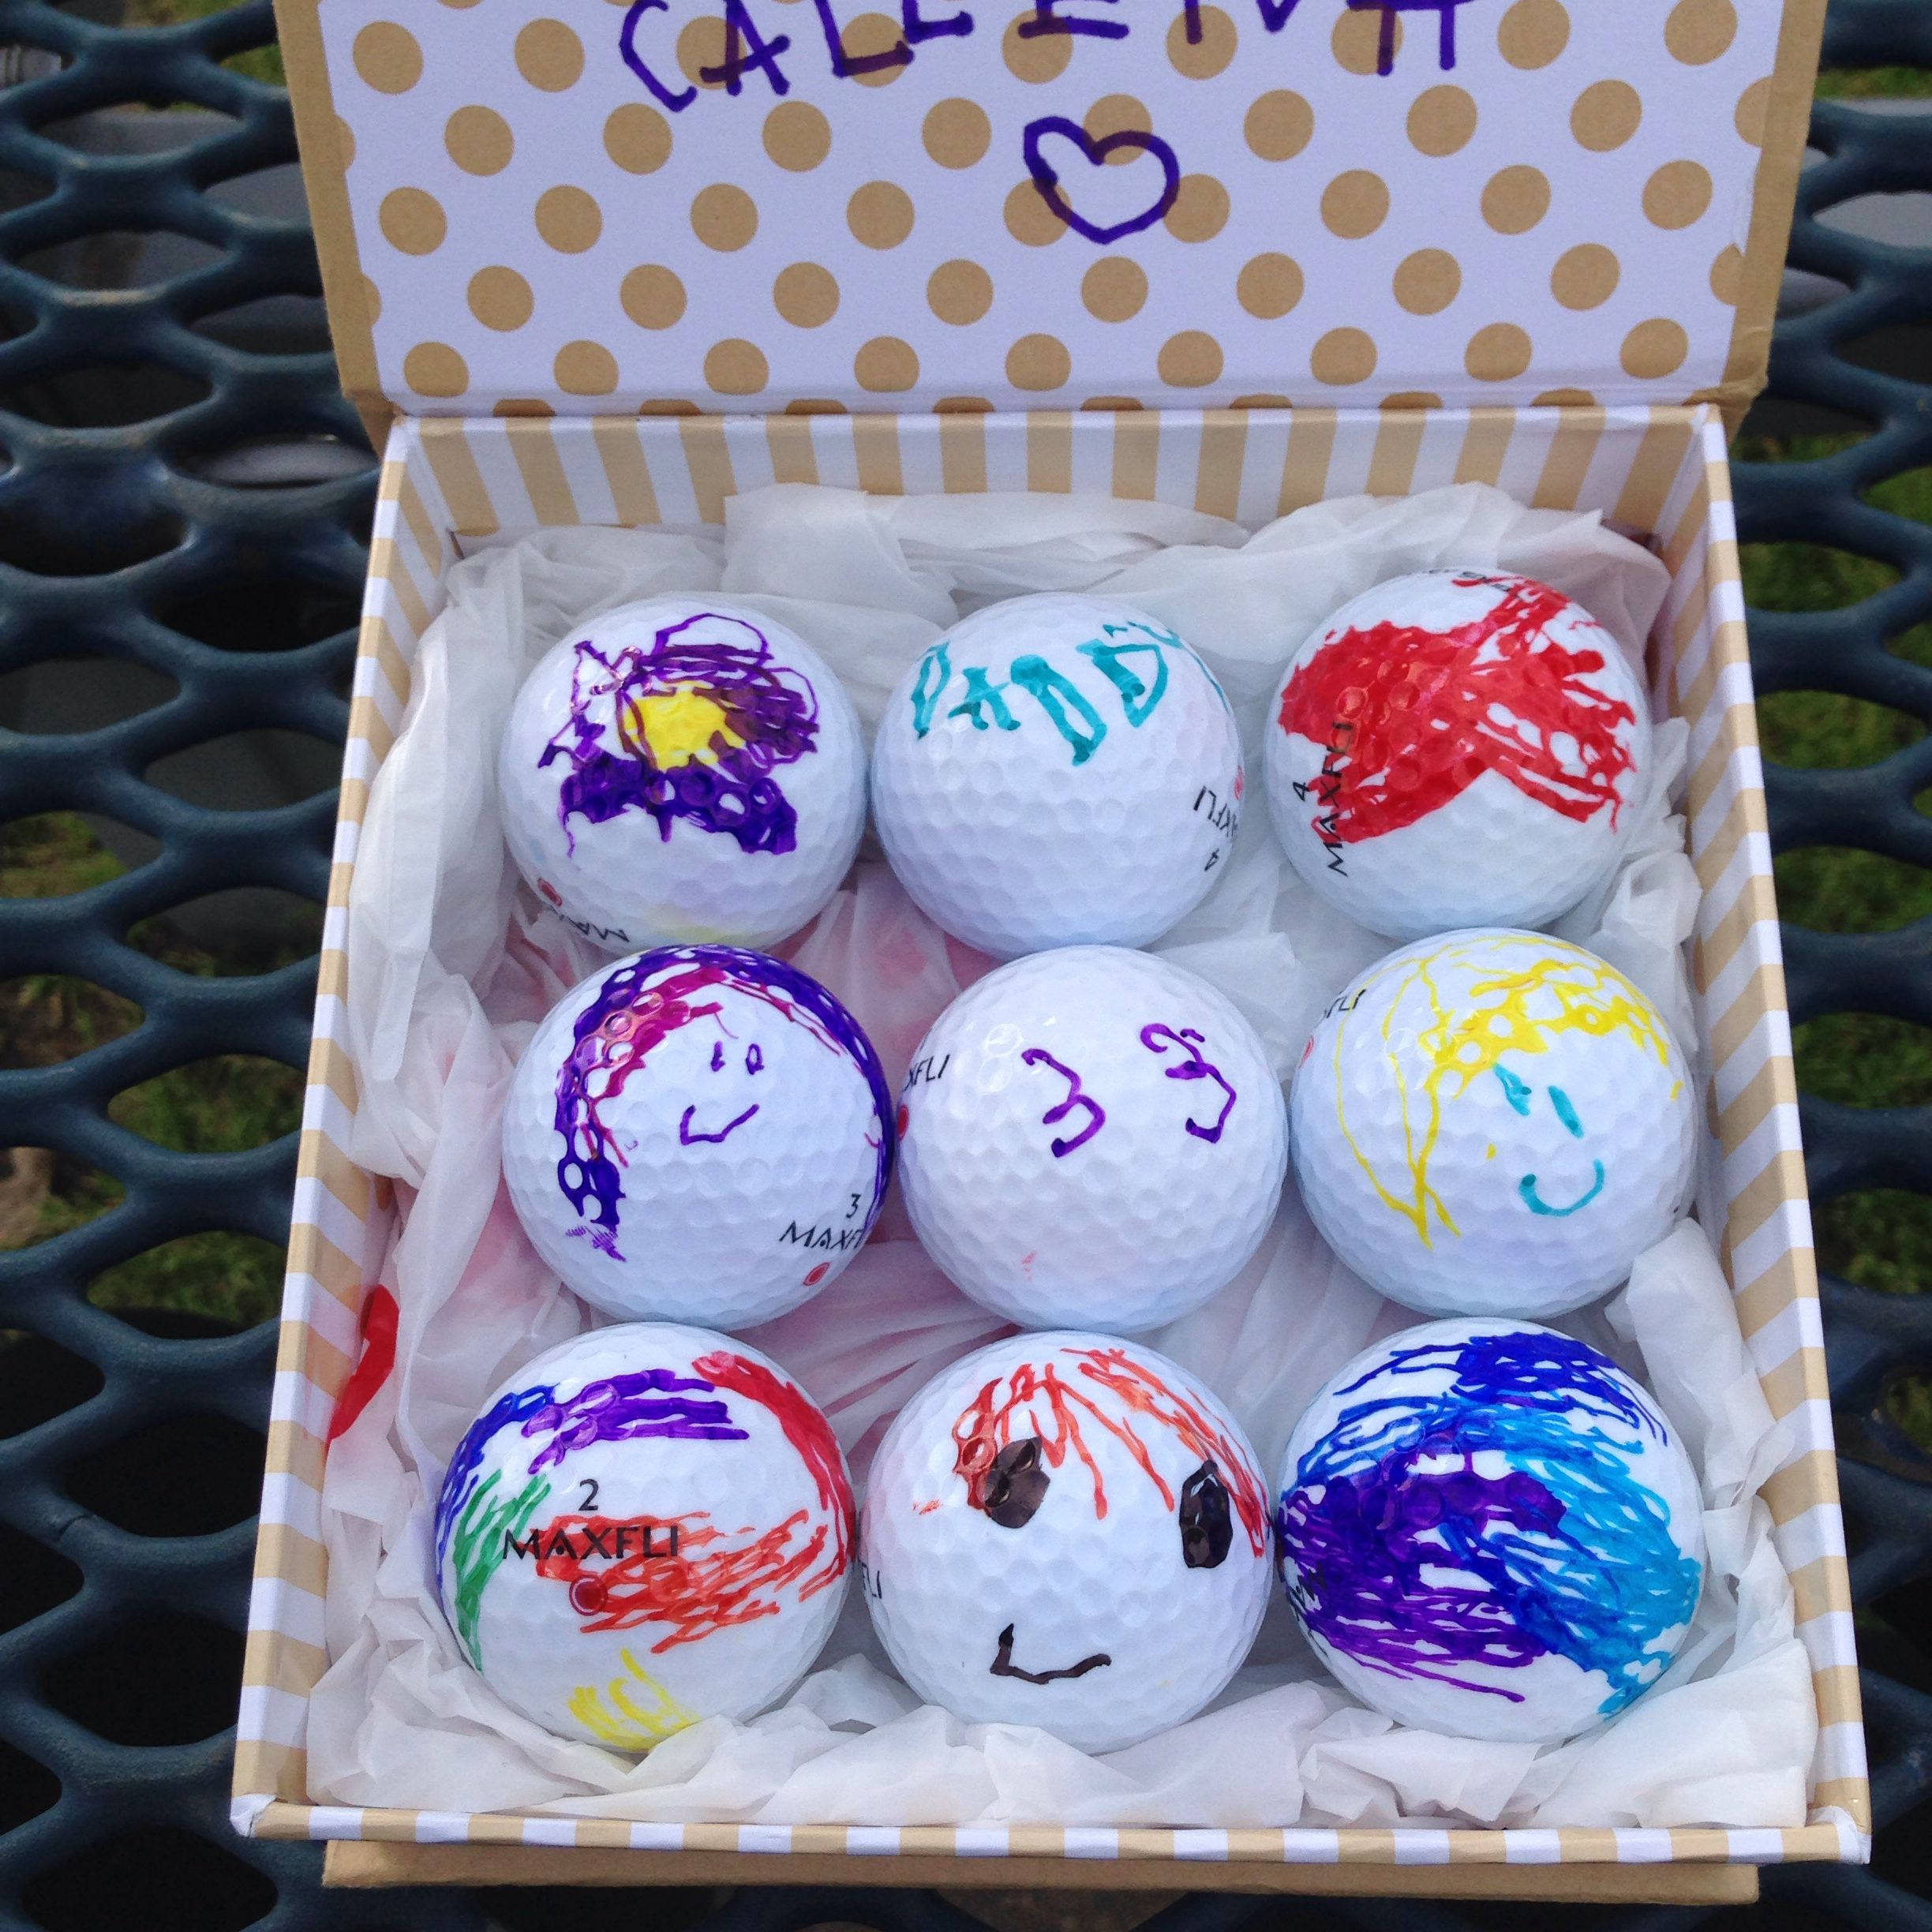 37 Diy Home Gifts That Looks Expensive: Custom Golf Balls For Dad (or Any Golfer)... Recycled (let